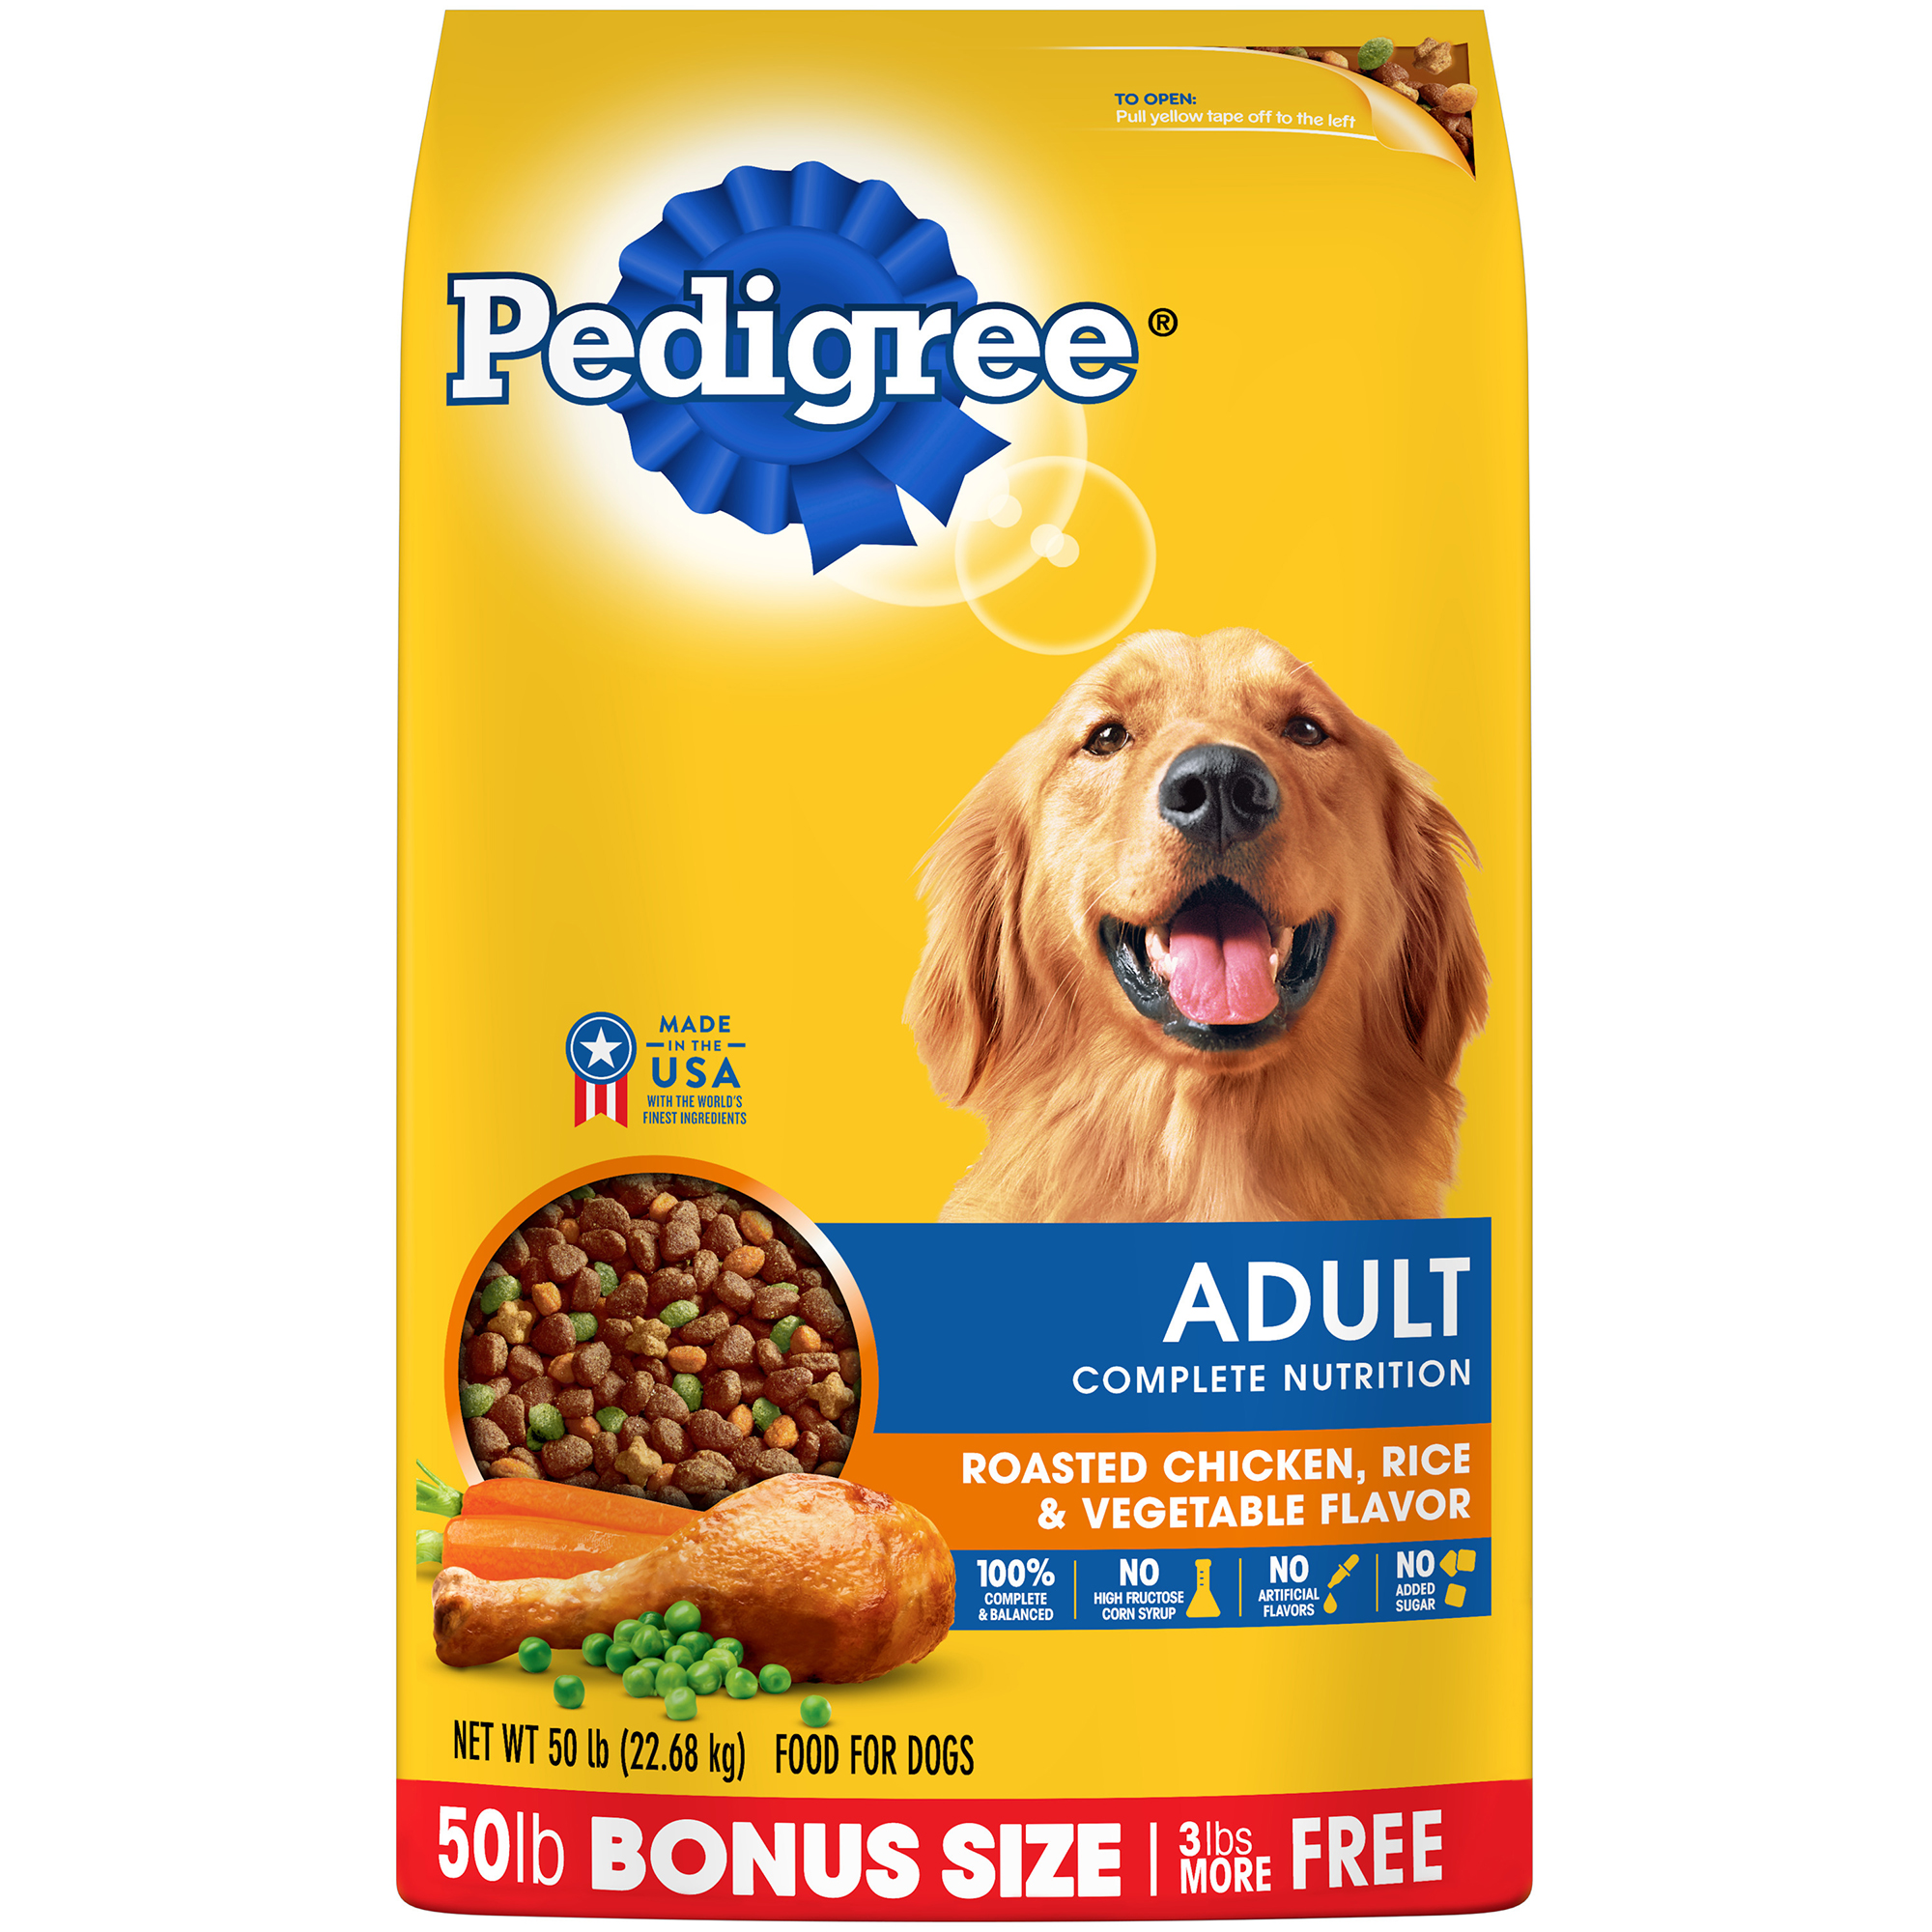 PEDIGREE Complete Nutrition Adult Dry Dog Food Roasted Chicken, Rice & Vegetable Flavor, 50 lb. Bag